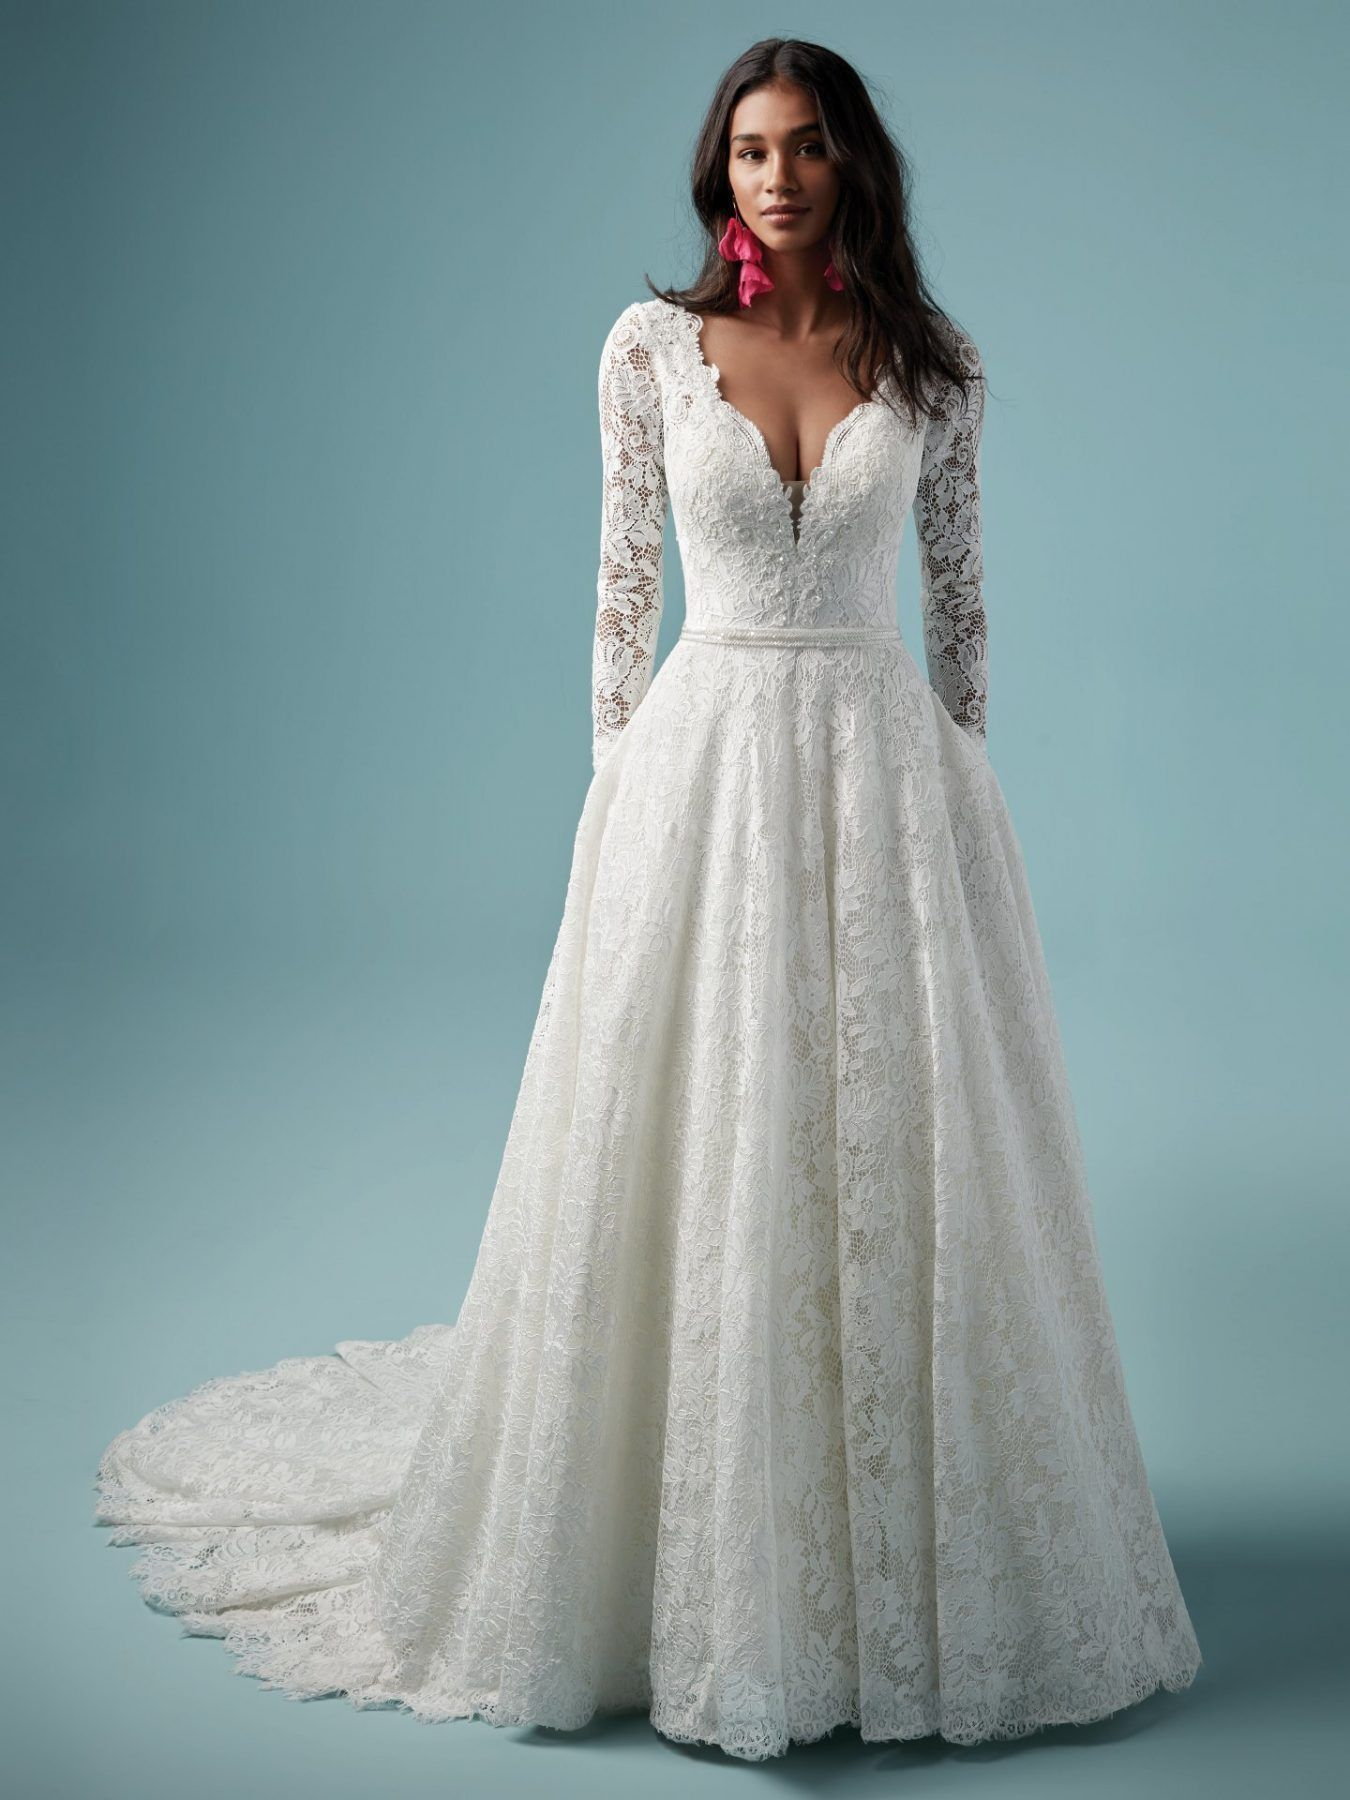 Lace V Neckline Long Sleeve Ball Gown Wedding Dress Long Sleeve